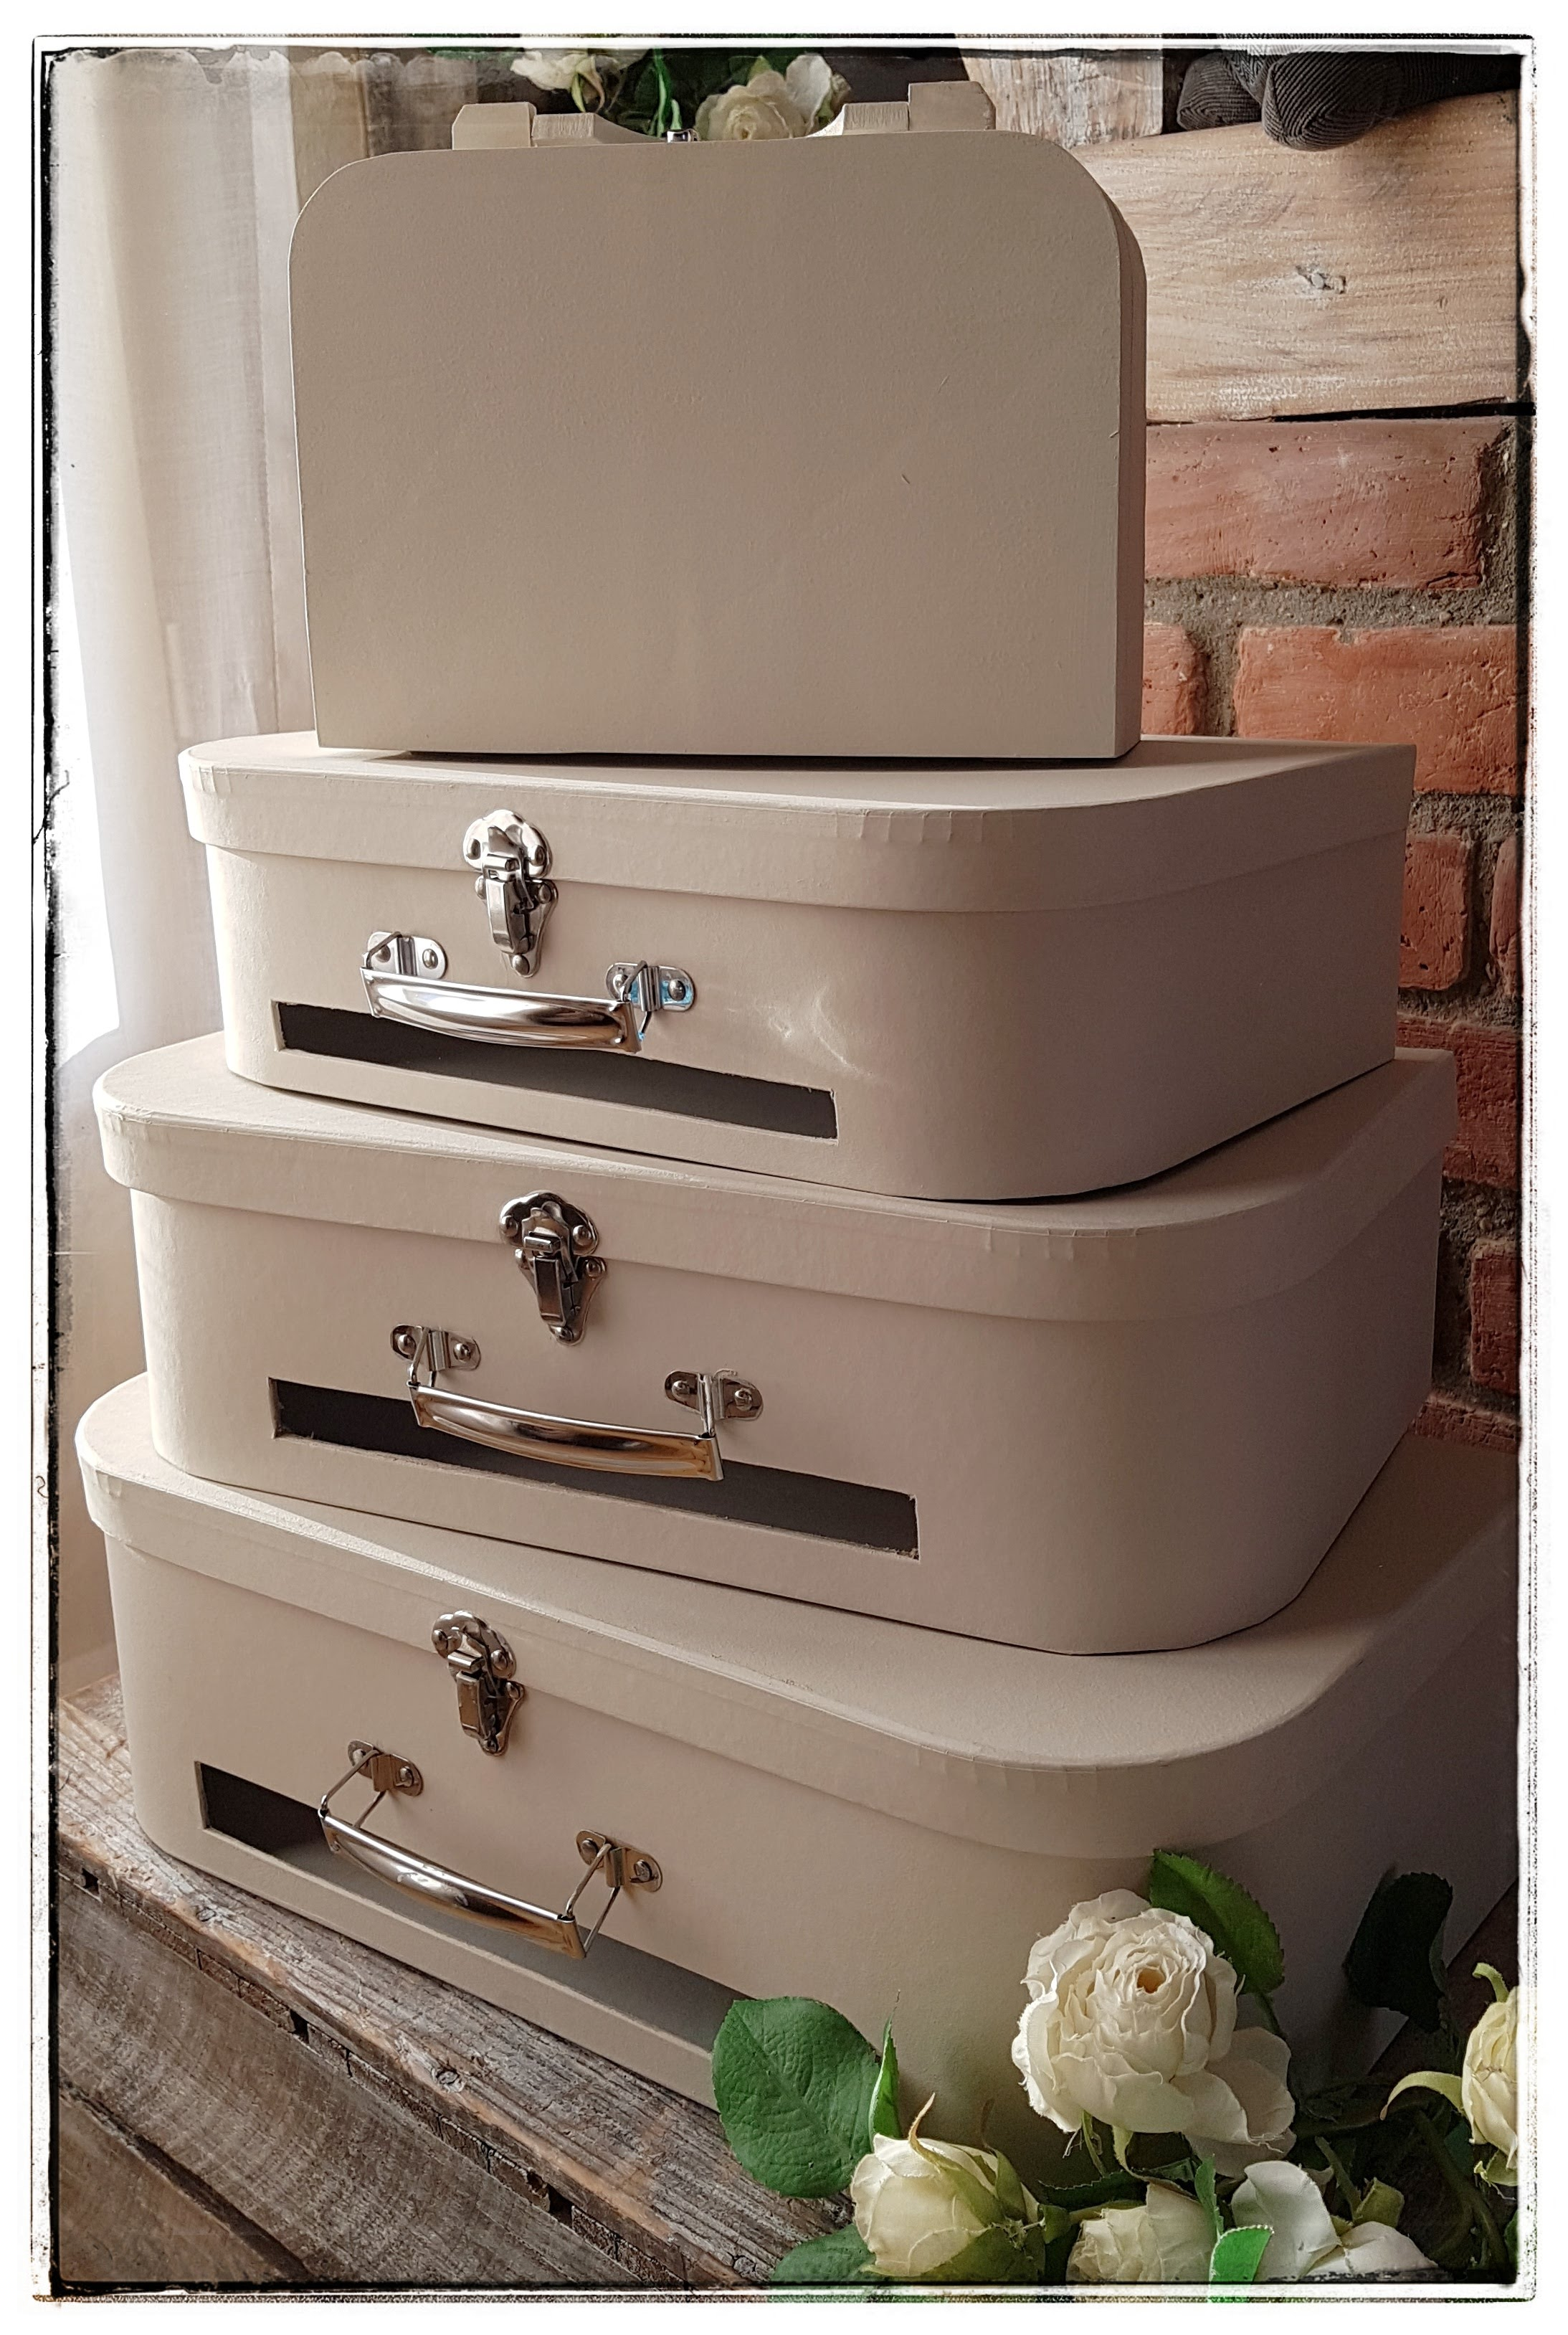 modele valise differentes tailles